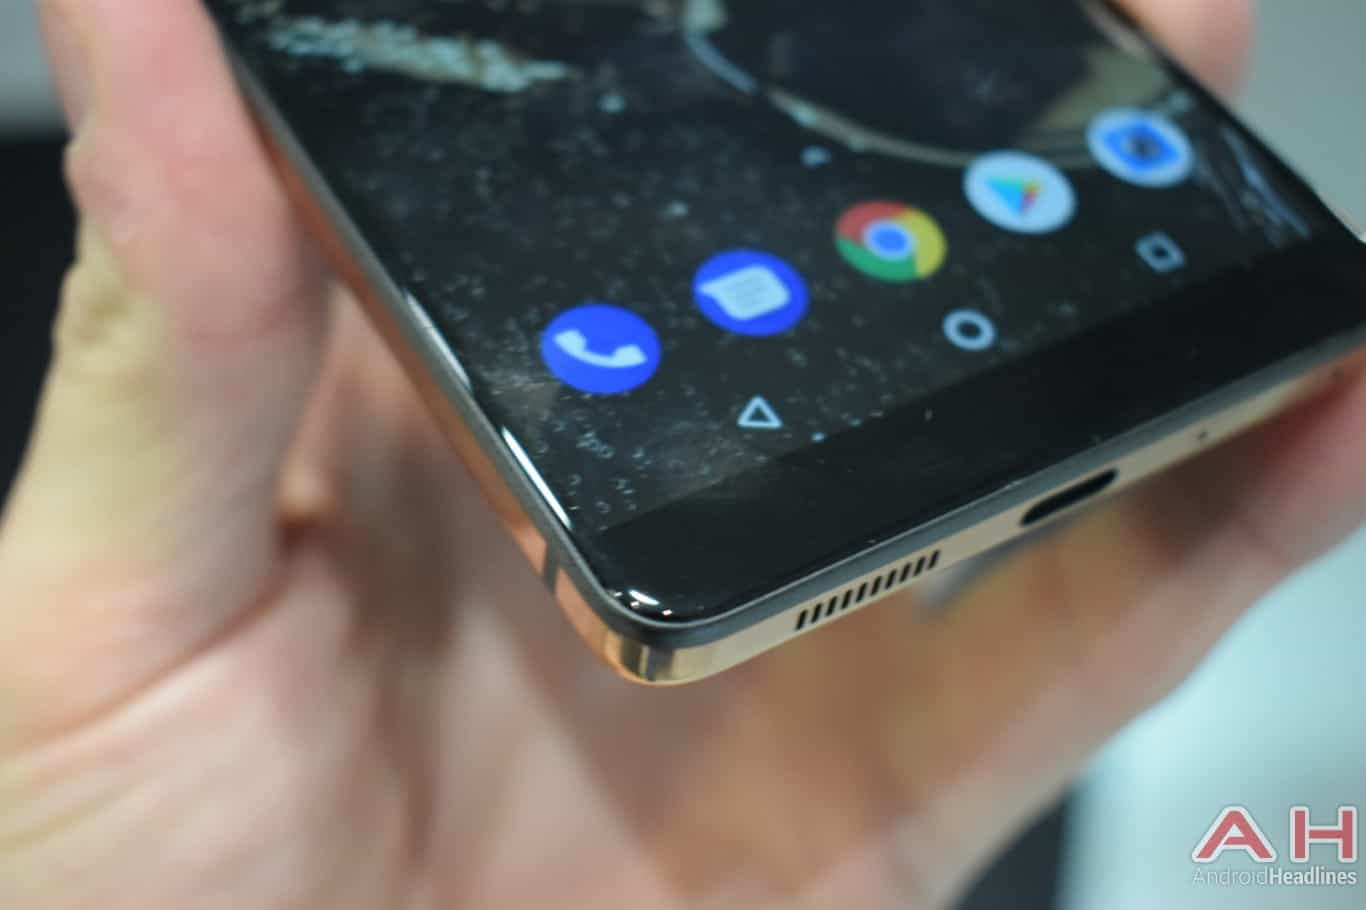 AH Essential PH 1 hands on MWC 2018 17